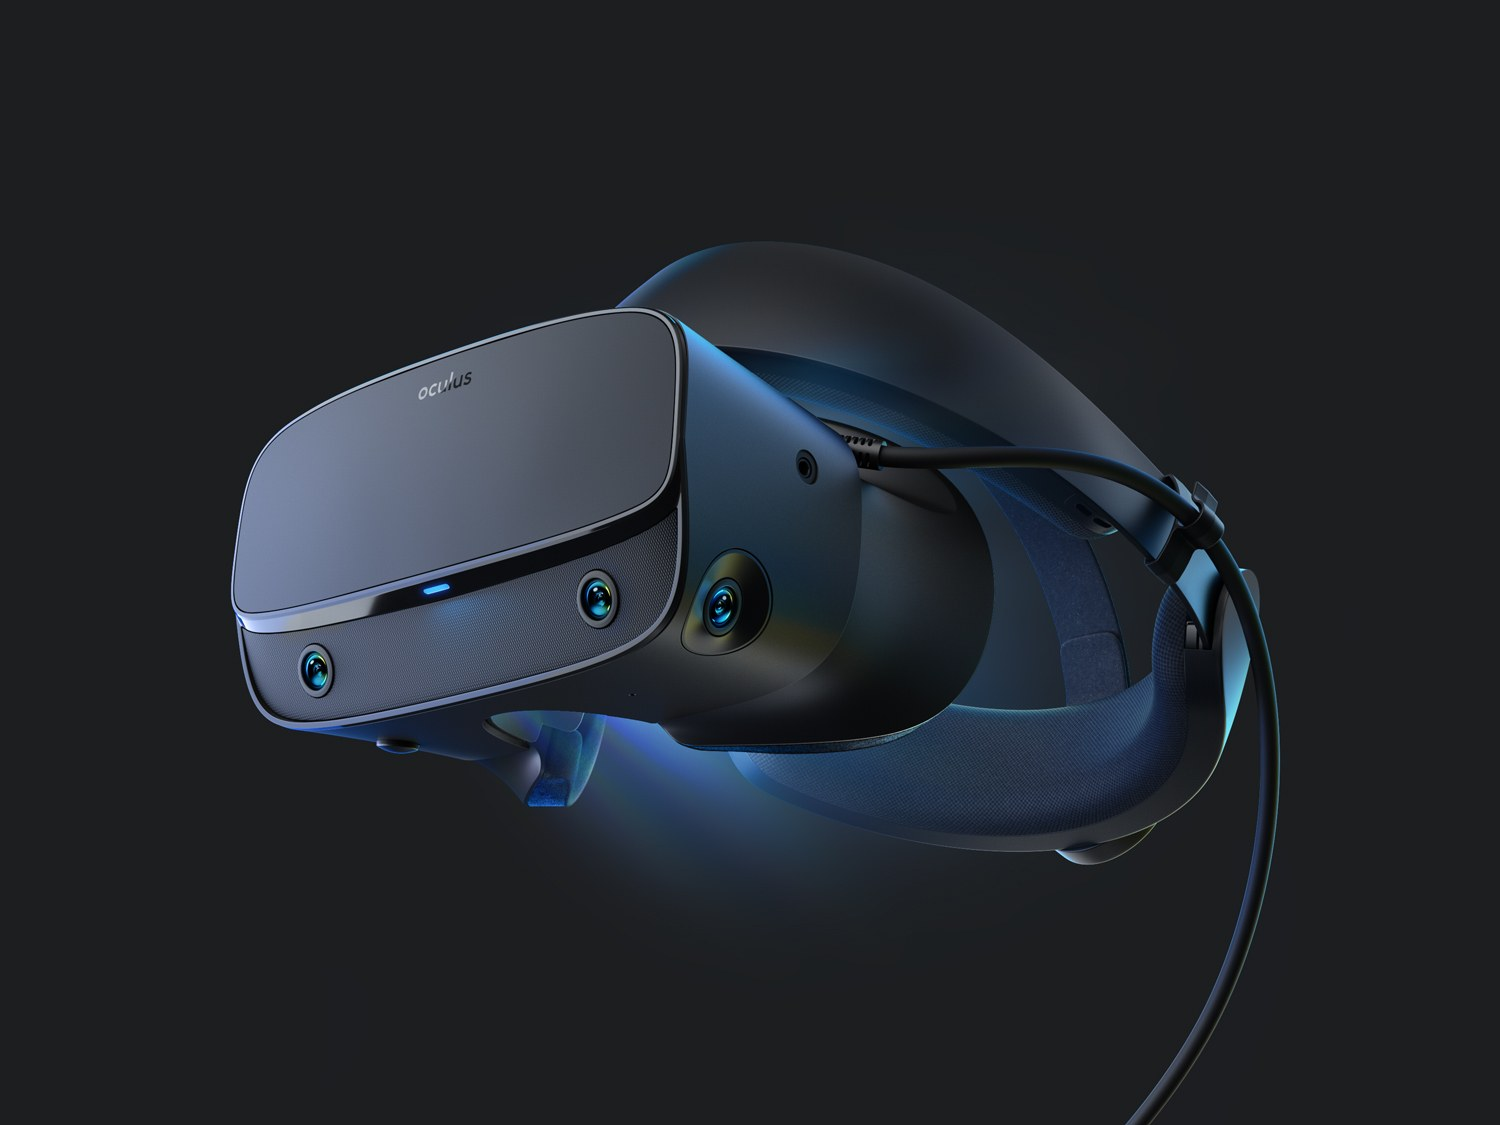 Facebook's Oculus Quest and Oculus Rift S launch on May 21st in Canada